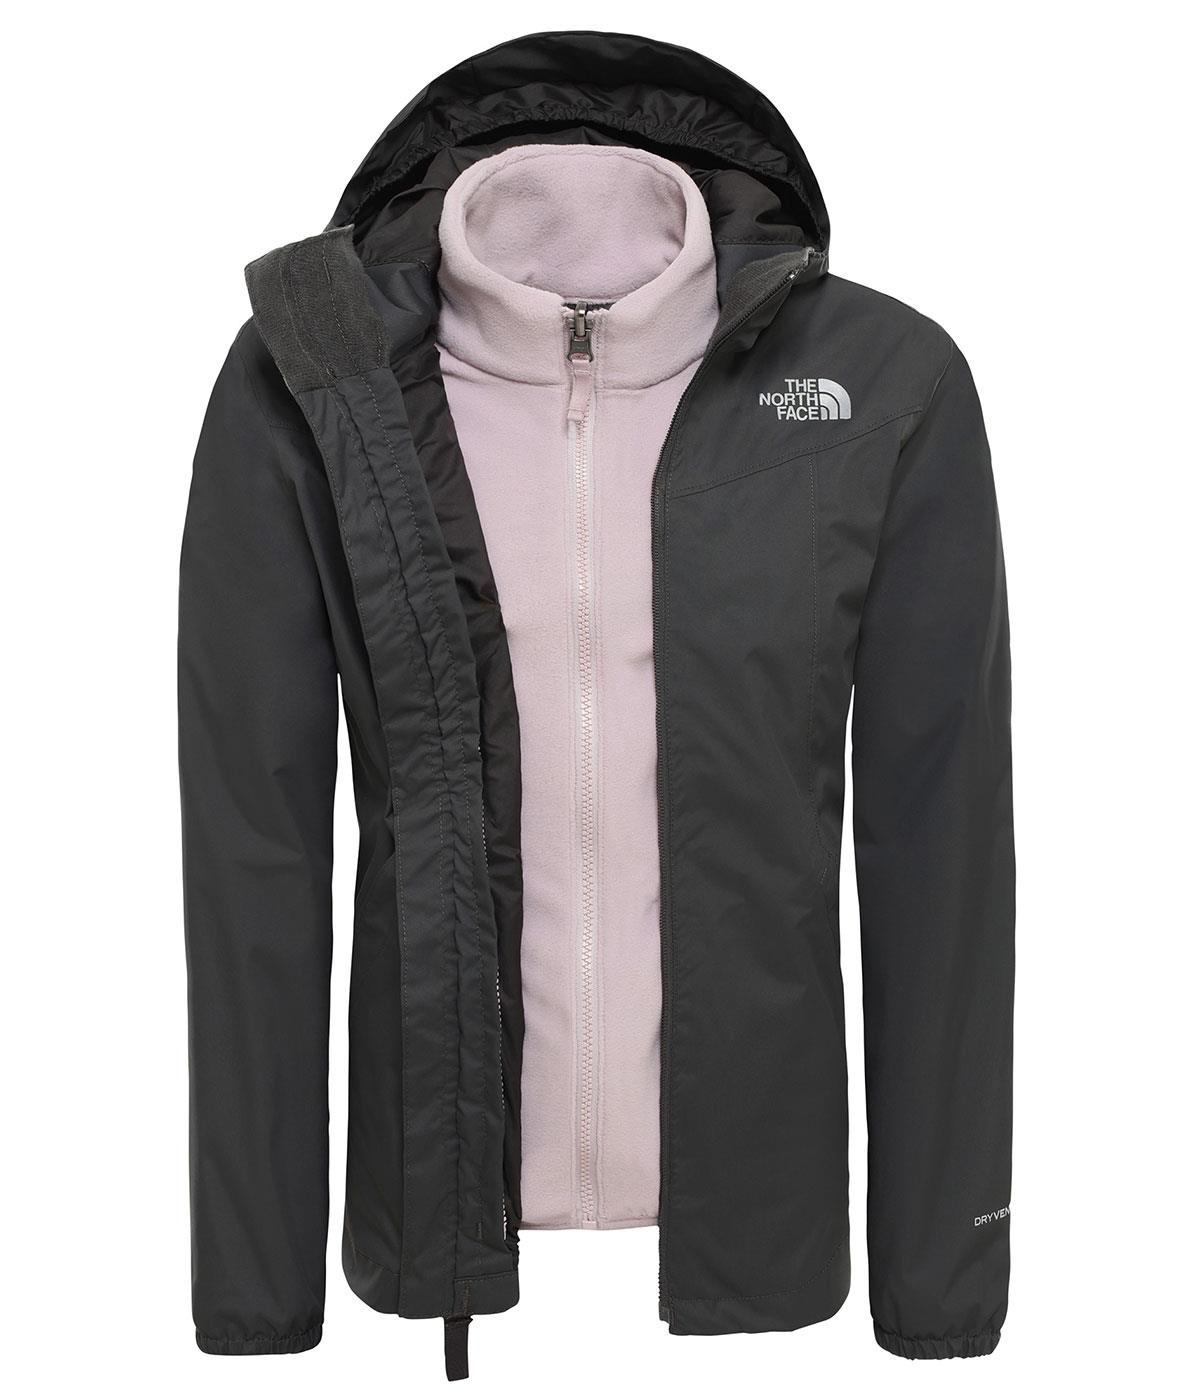 The North Face  Eliana Poları  Çıkabilen 3 in 1 Kız Ceketi nf0A3Yf40C51